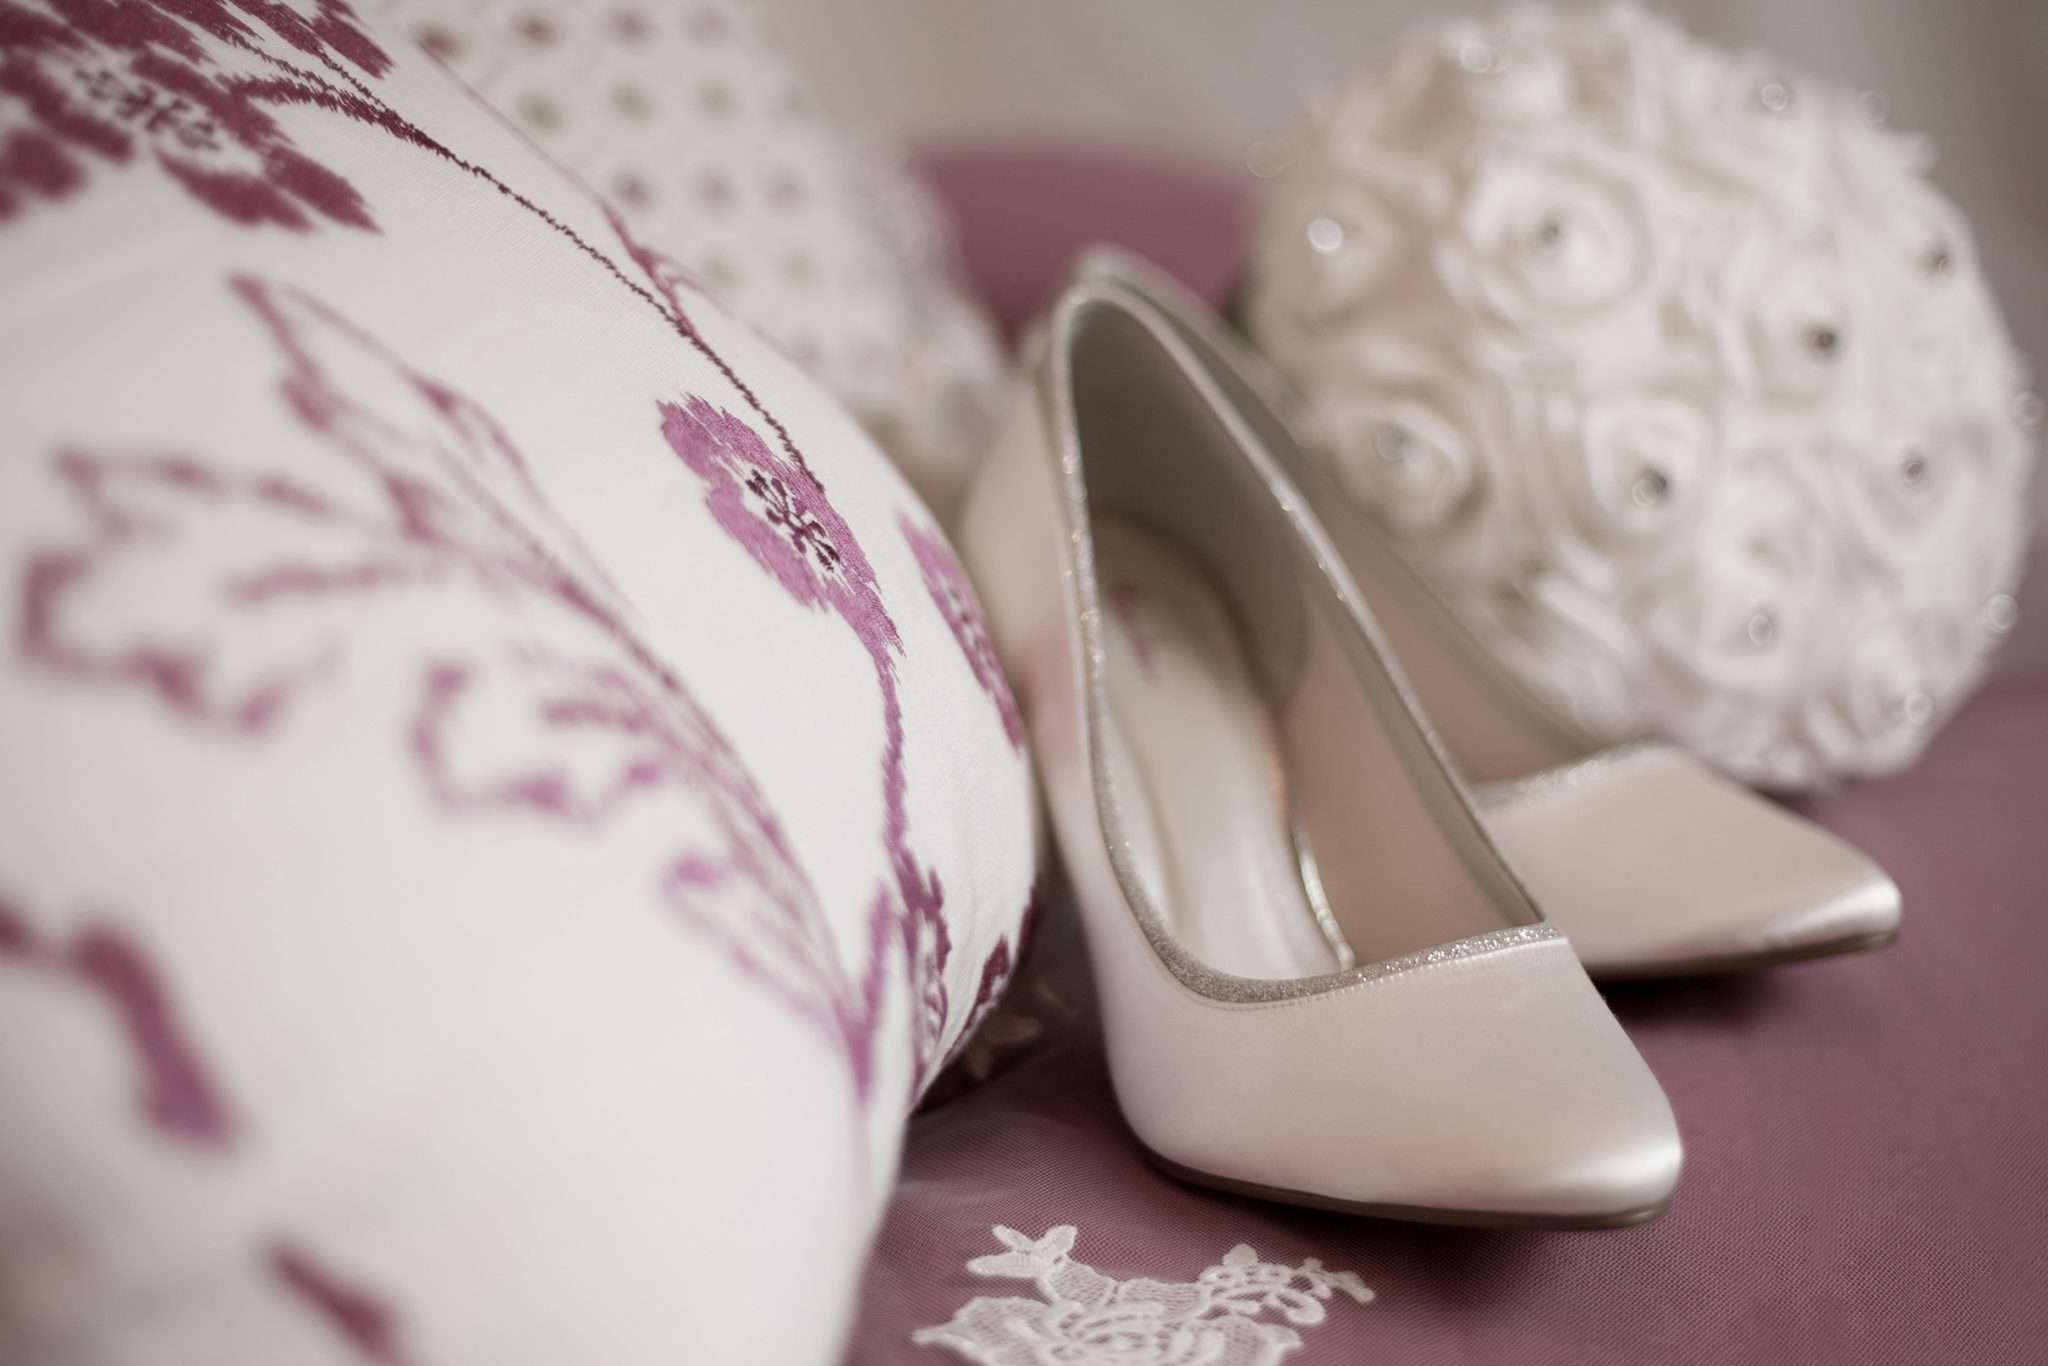 A photo of a pair of white bridal shoes and bouquet on a pink sofa